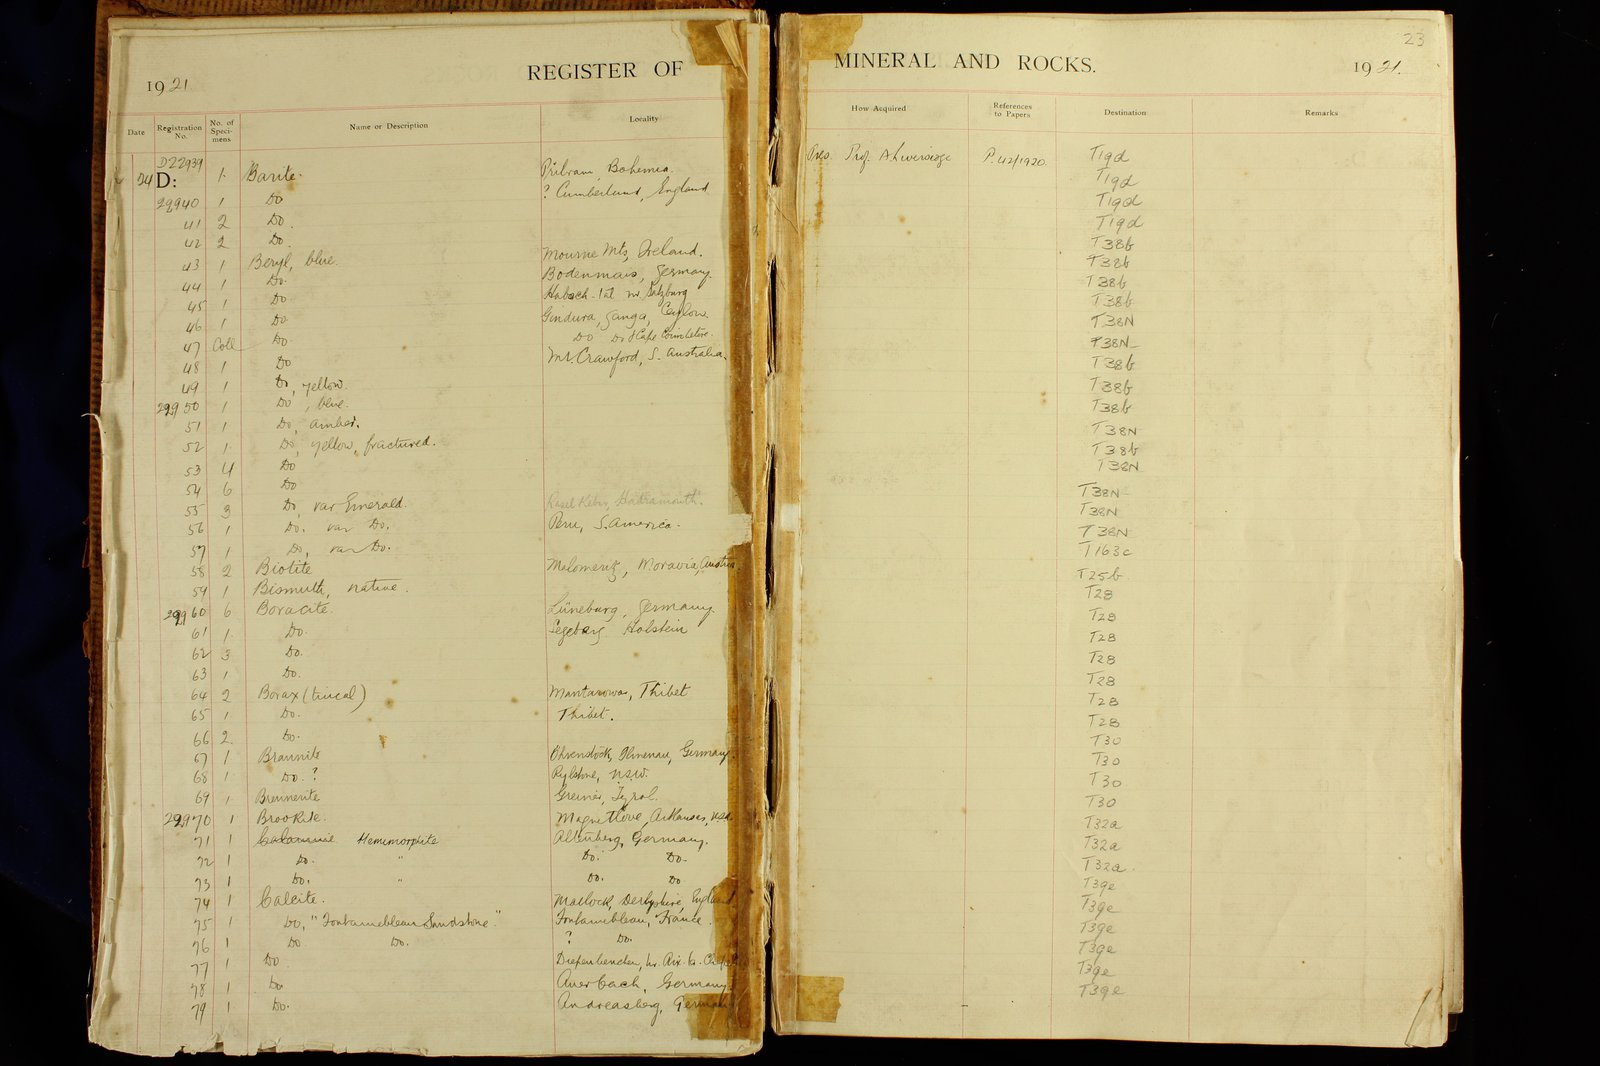 Mineralogy Register D4 (1921) page 23: 22939 to 22979